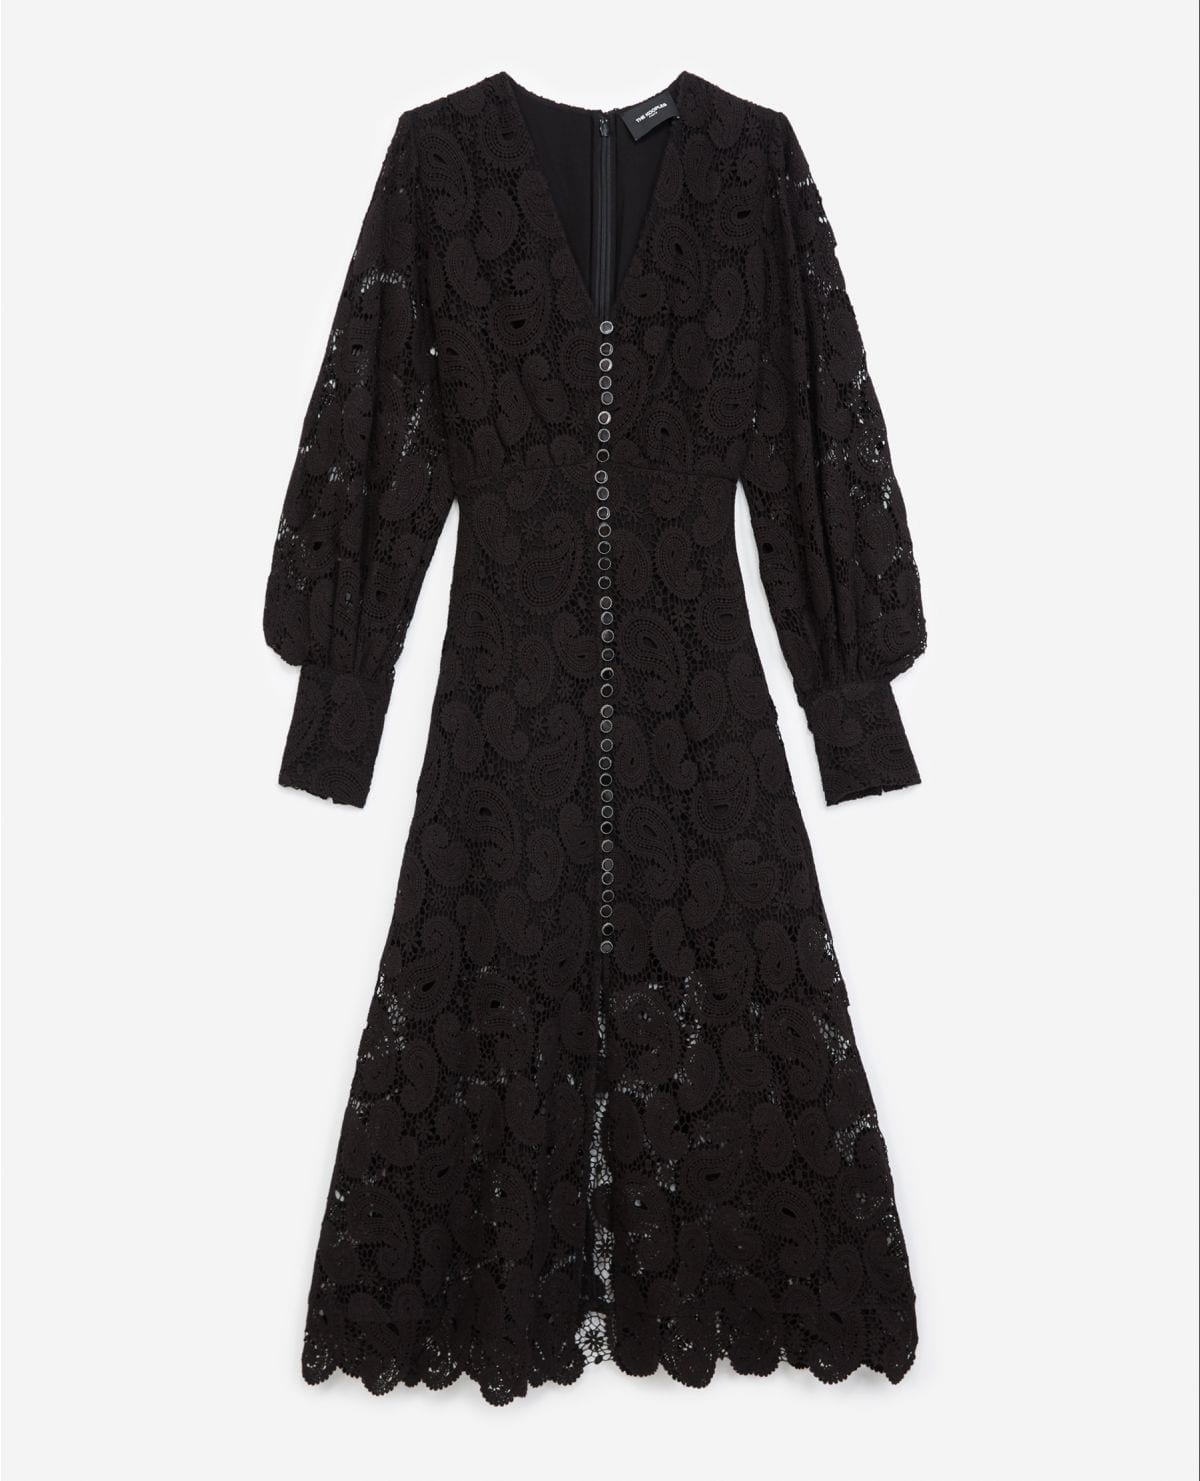 THE KOOPLES Long Buttoned Black Lace Dress